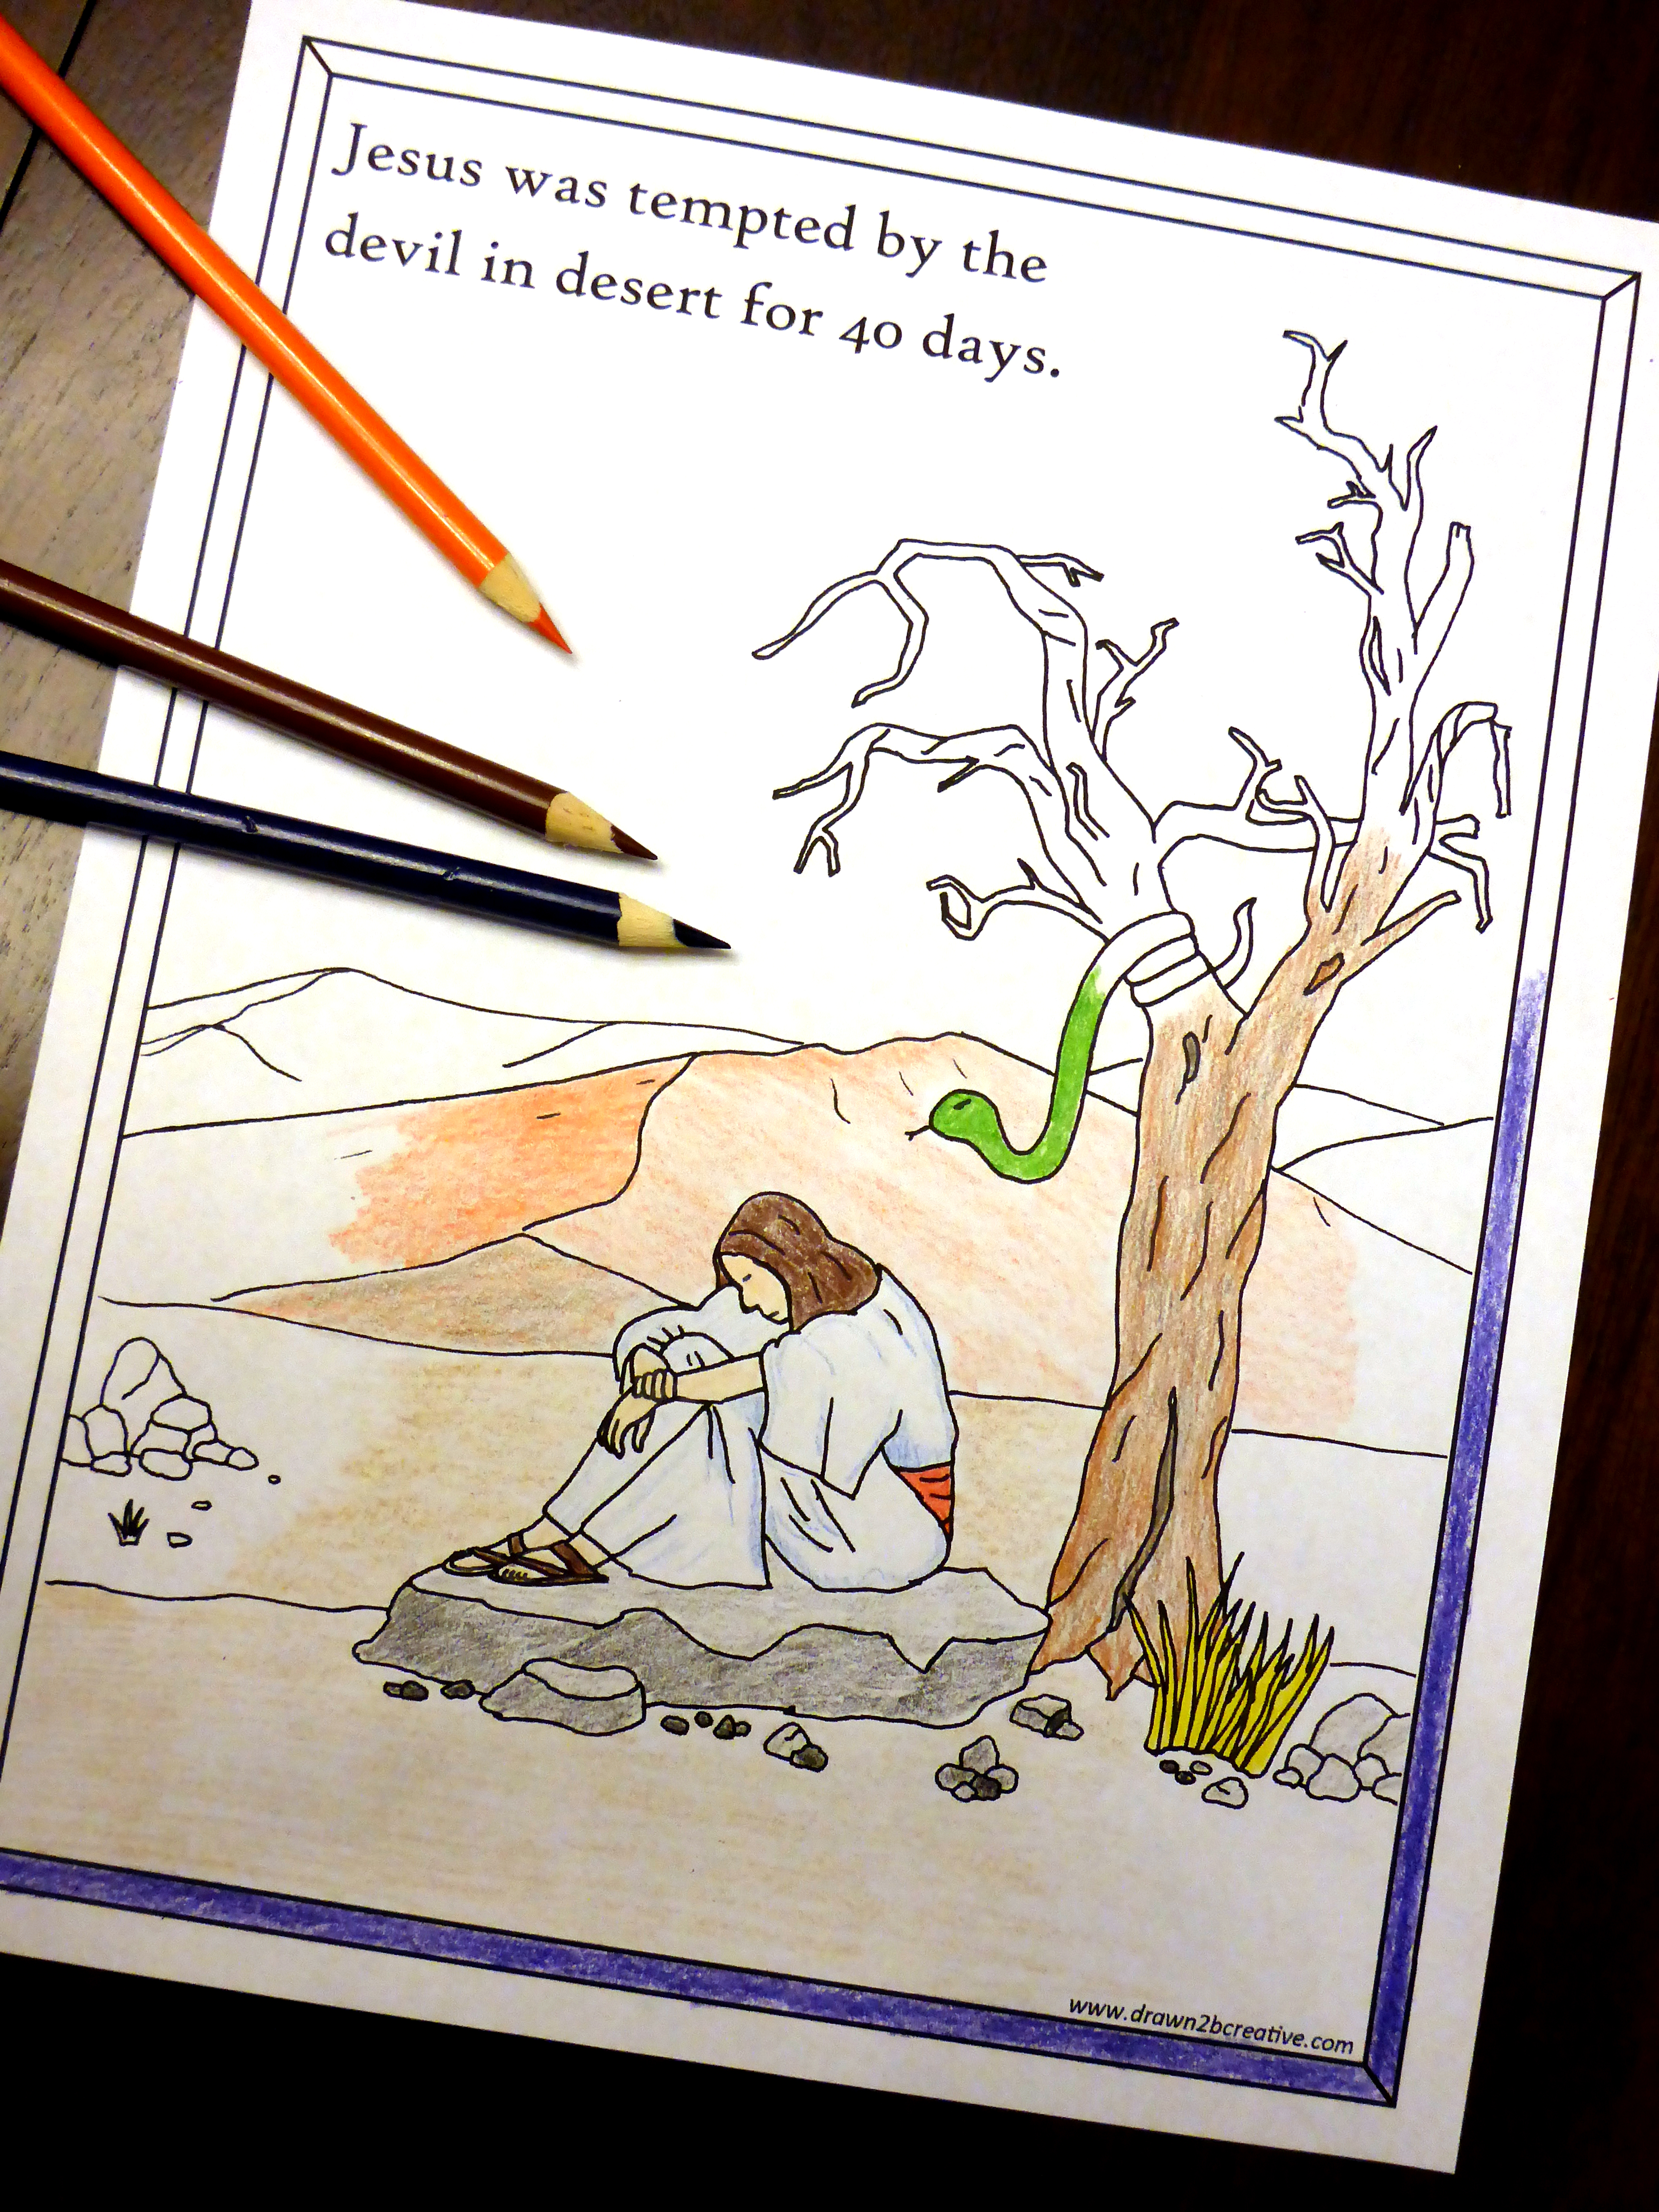 This is a photo of Effortless Jesus Tempted In The Wilderness Coloring Sheet